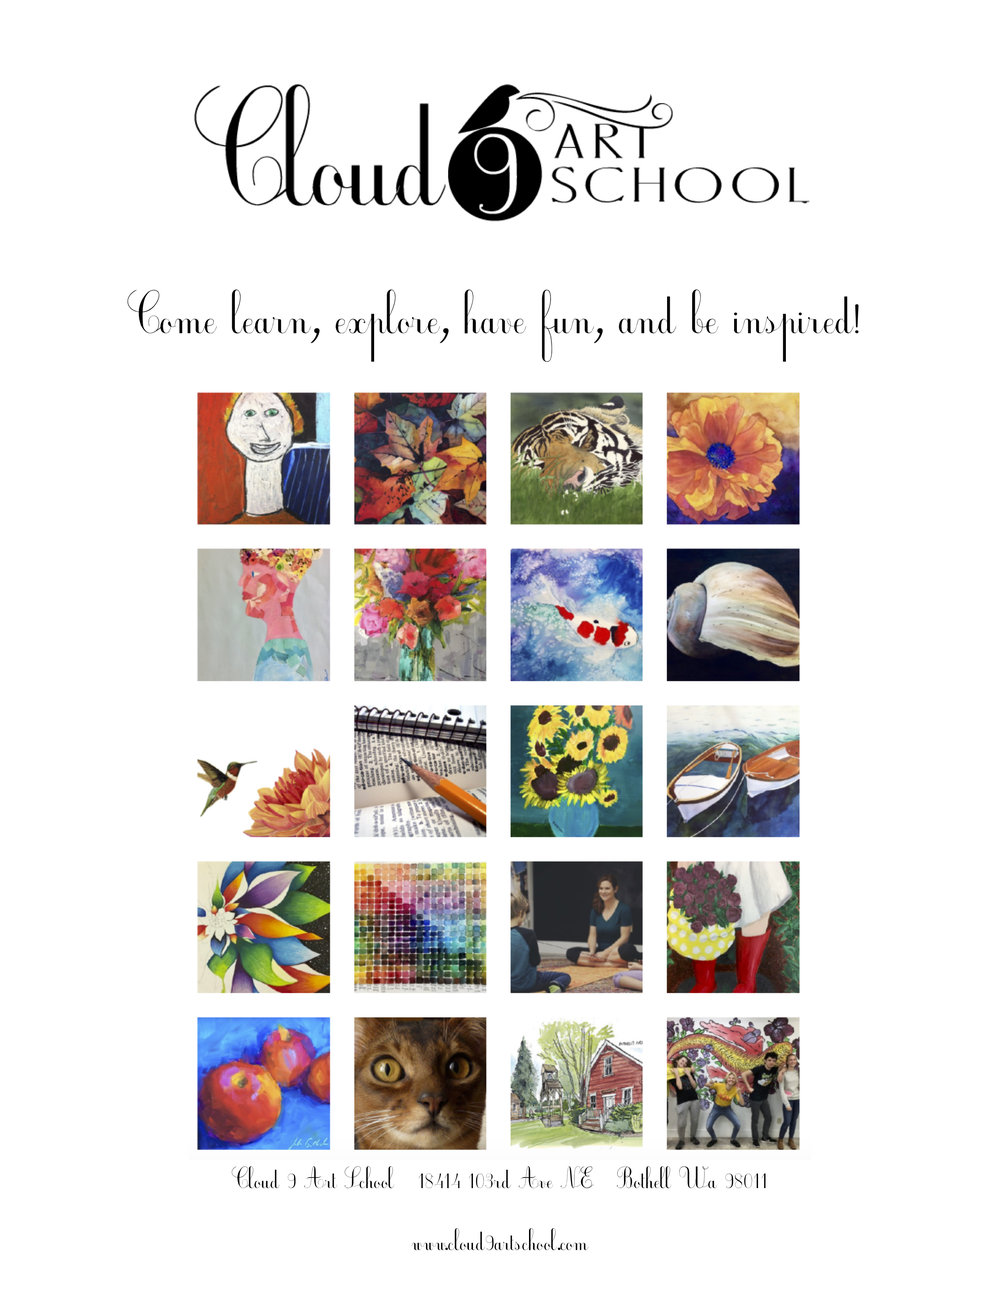 Cloud 9 Catalog.jpg